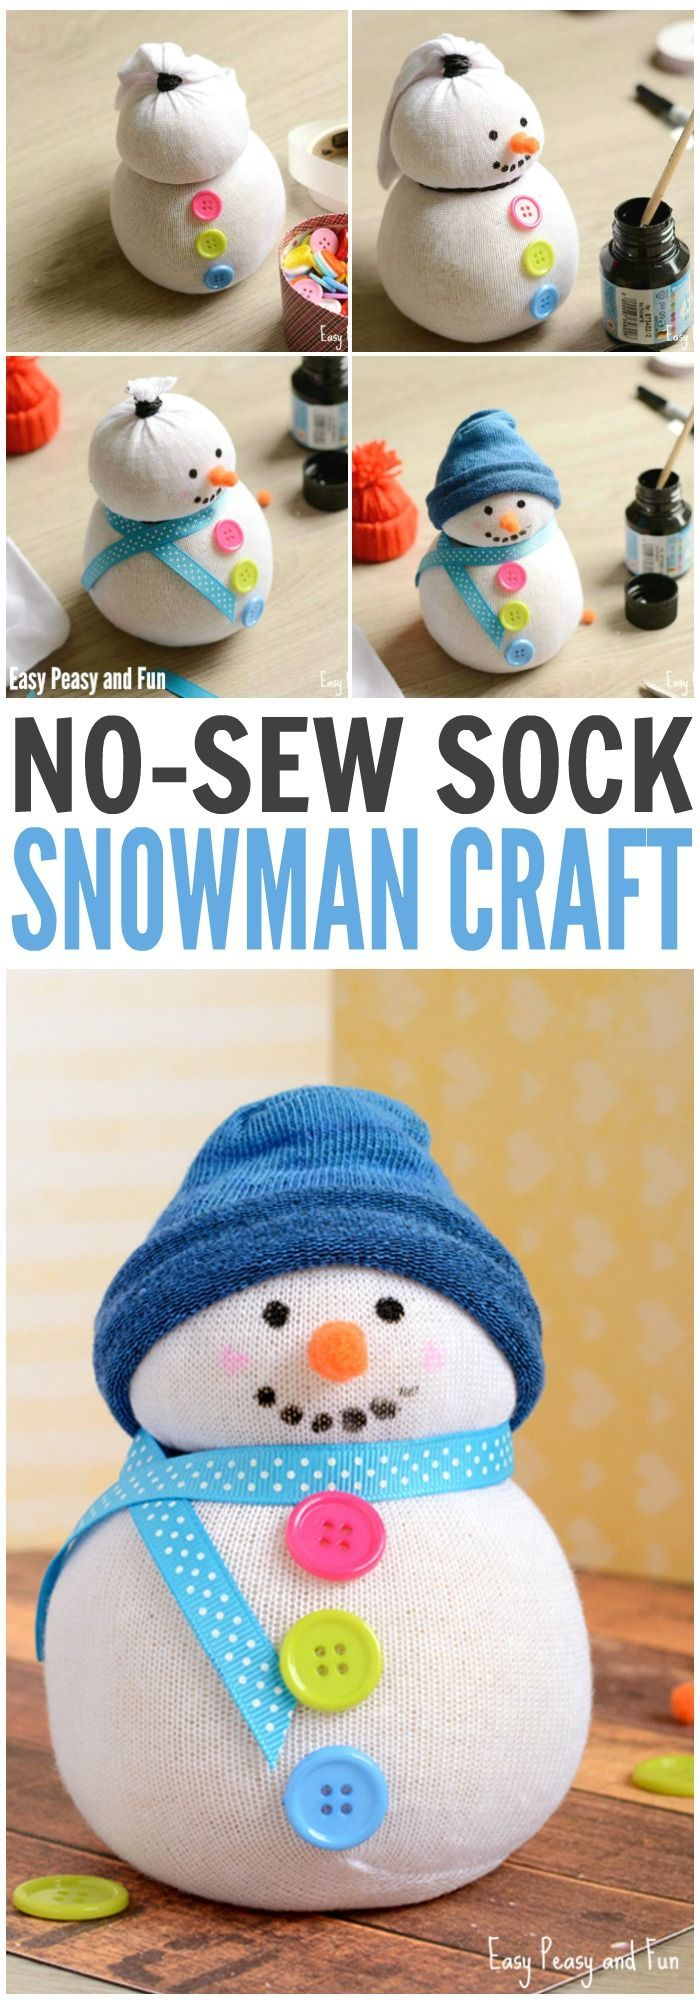 Ideas For Christmas Crafts For Kids Part - 44: No-Sew Sock Snowman Craft. Christmas Crafts For Kids ...